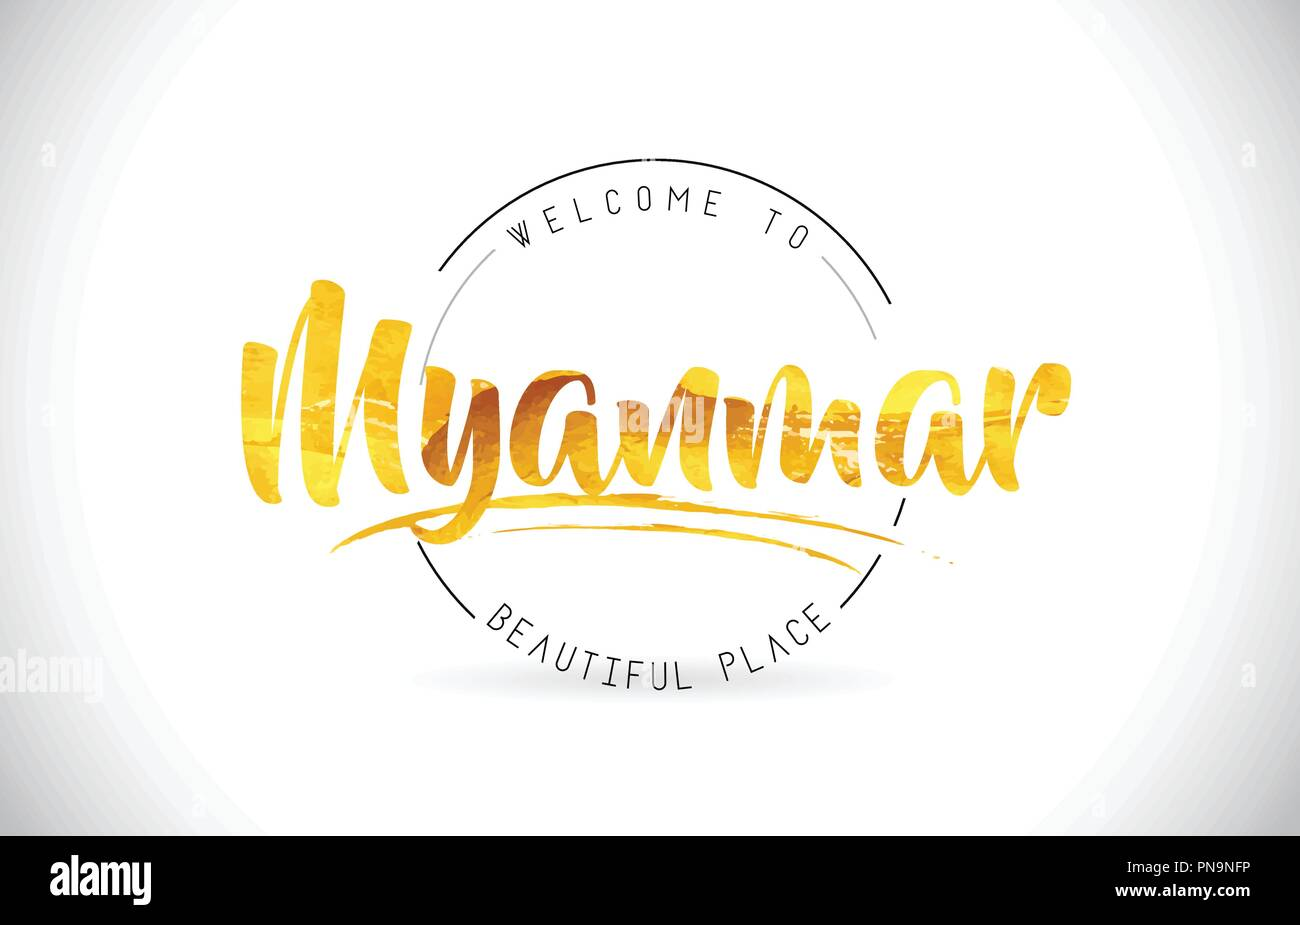 Myanmar Welcome To Word Text with Handwritten Font and Golden Texture Design Illustration Vector. - Stock Vector